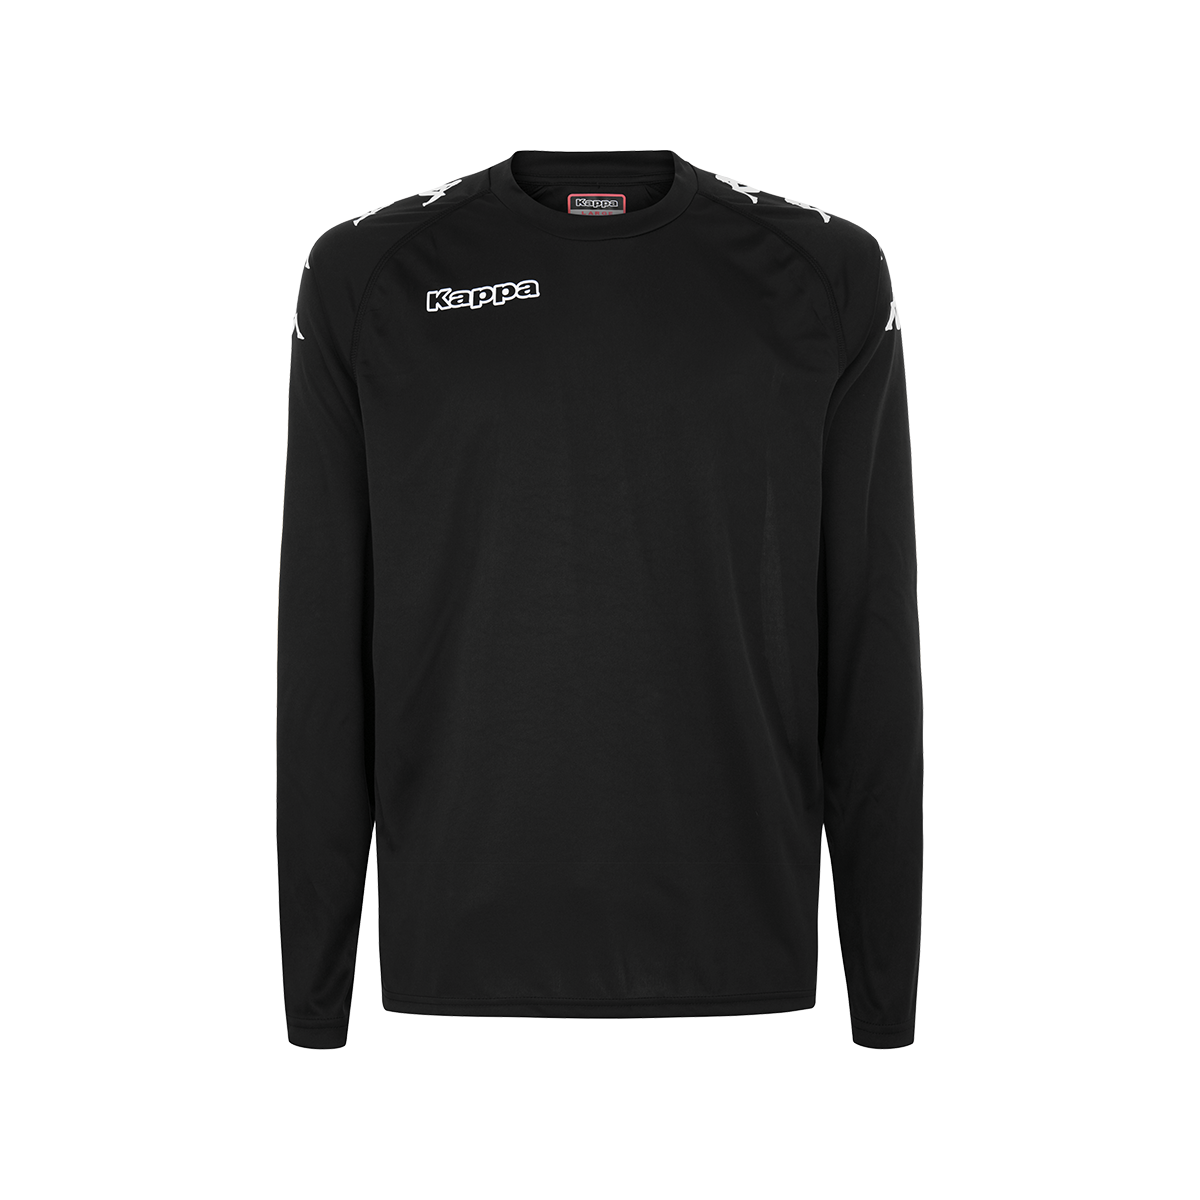 Kappa Cinanda Match Shirt LS - Black